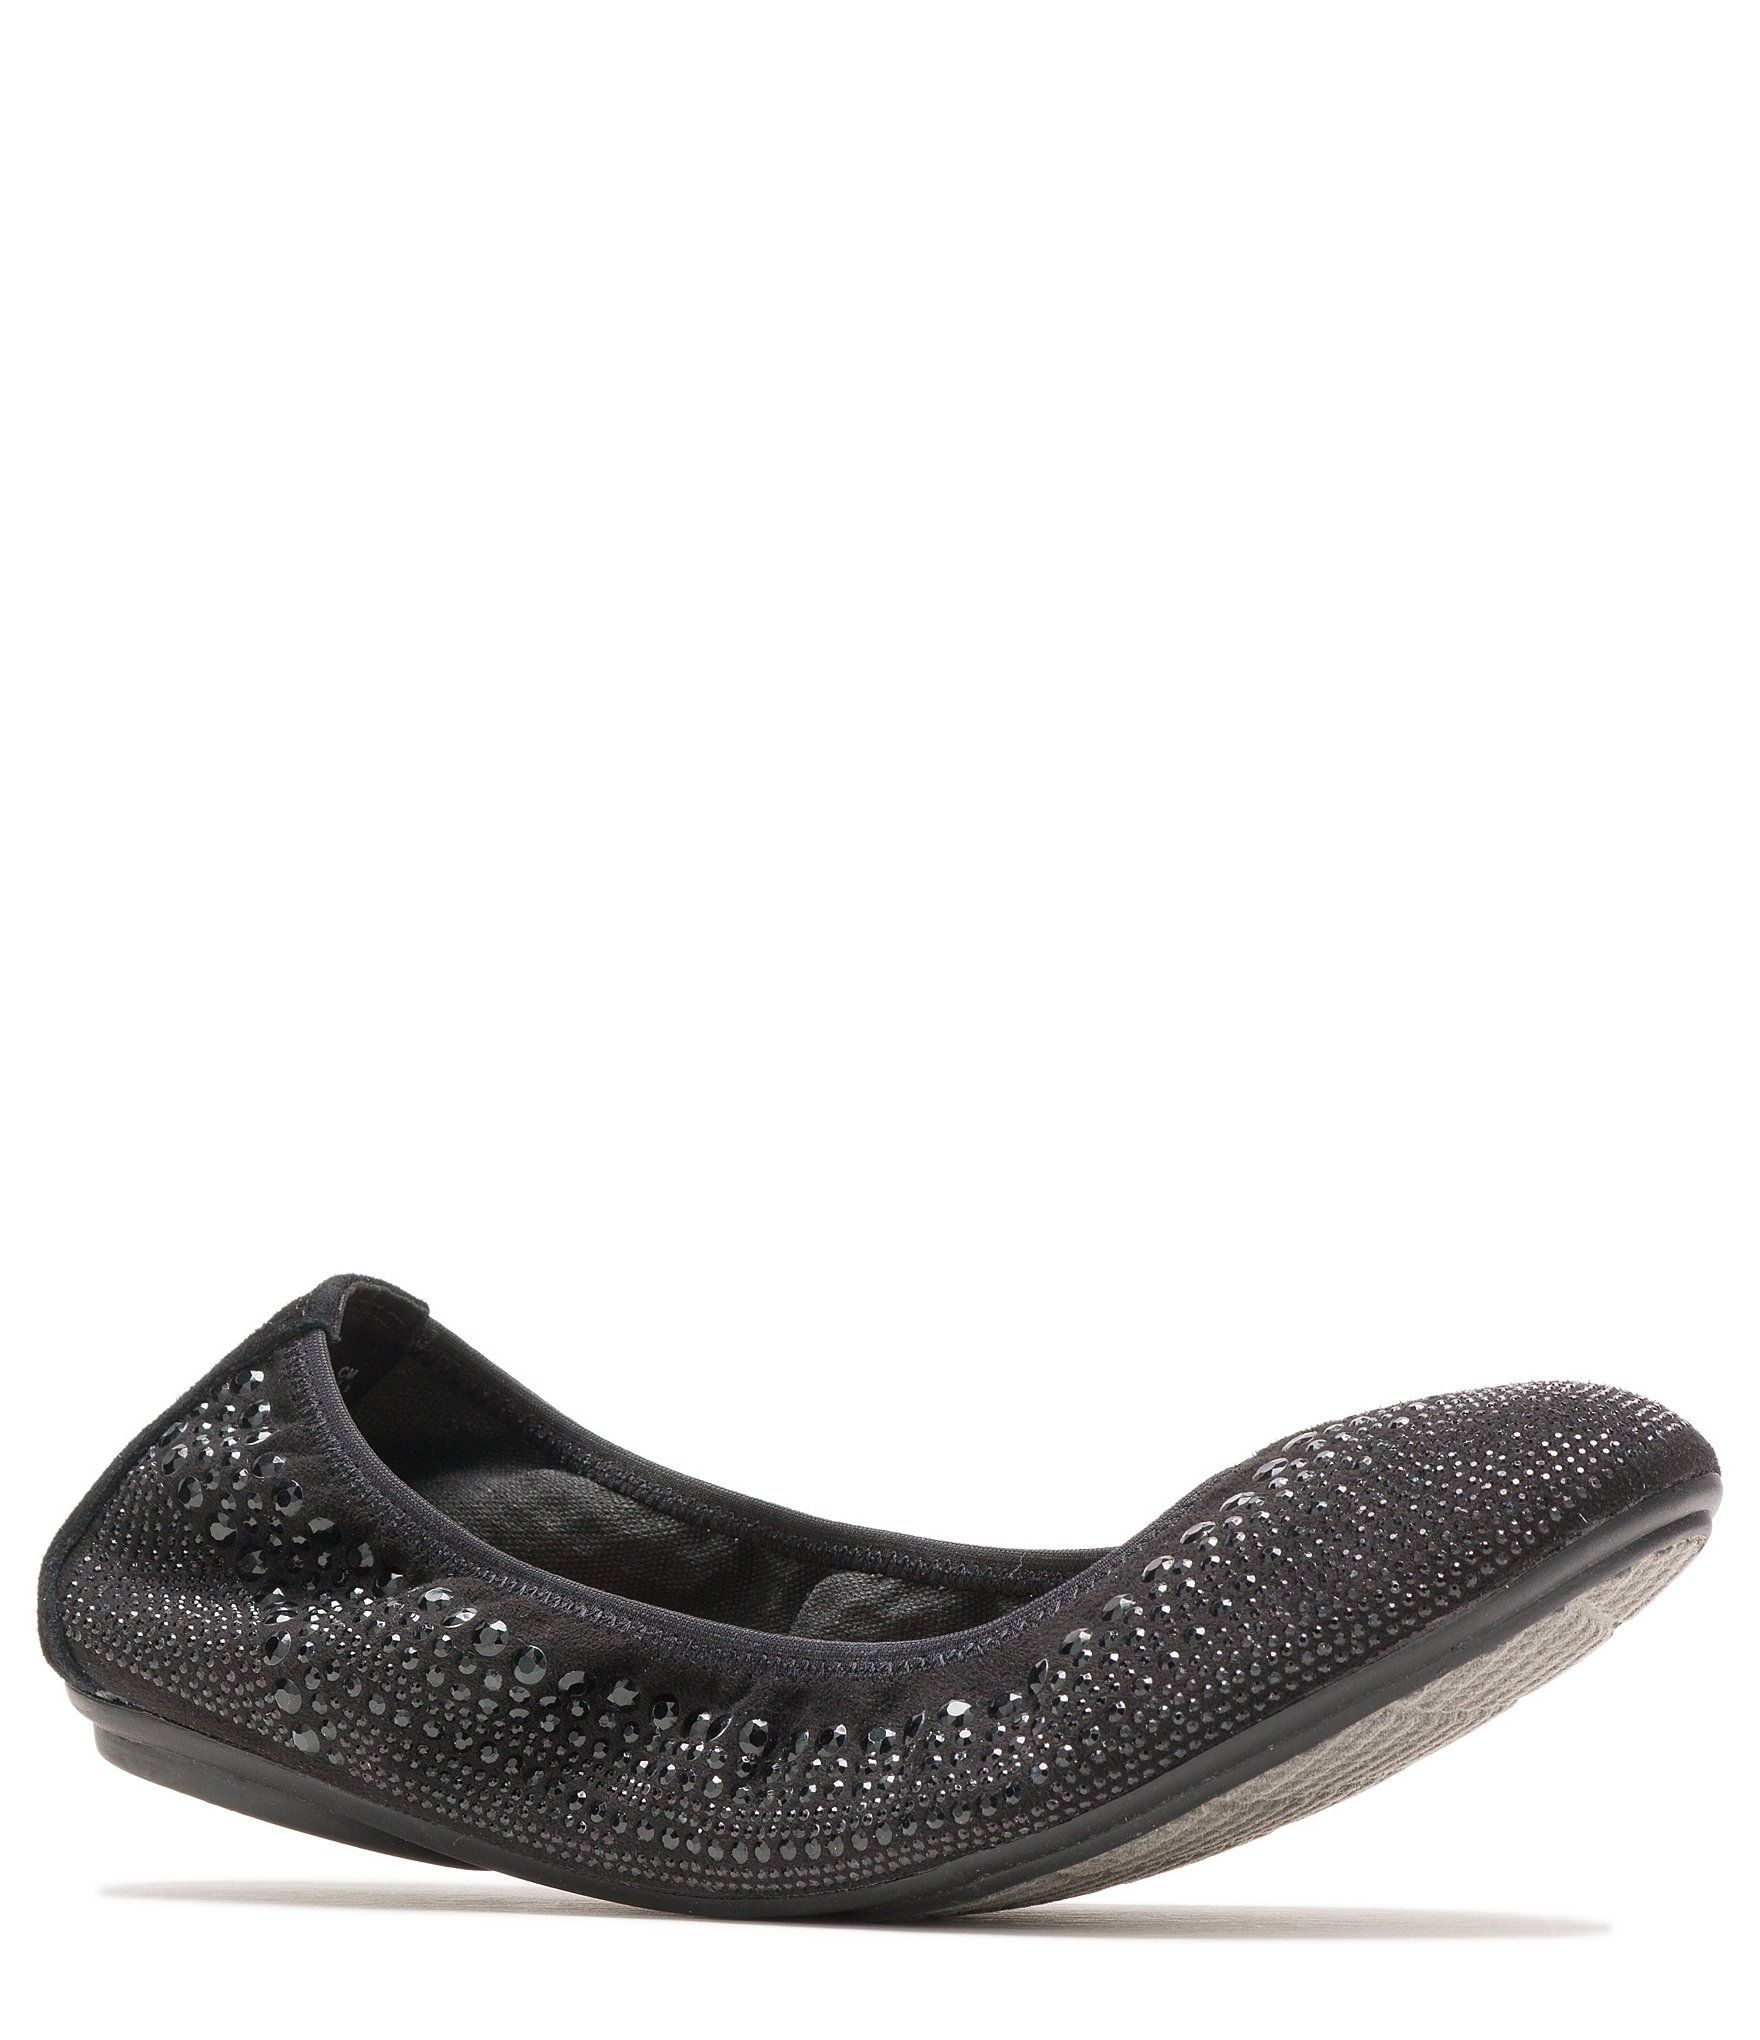 Hush Puppies Chaste Studded Leather Ballet Slip Ons In 2020 Studded Leather Hush Puppies Leather